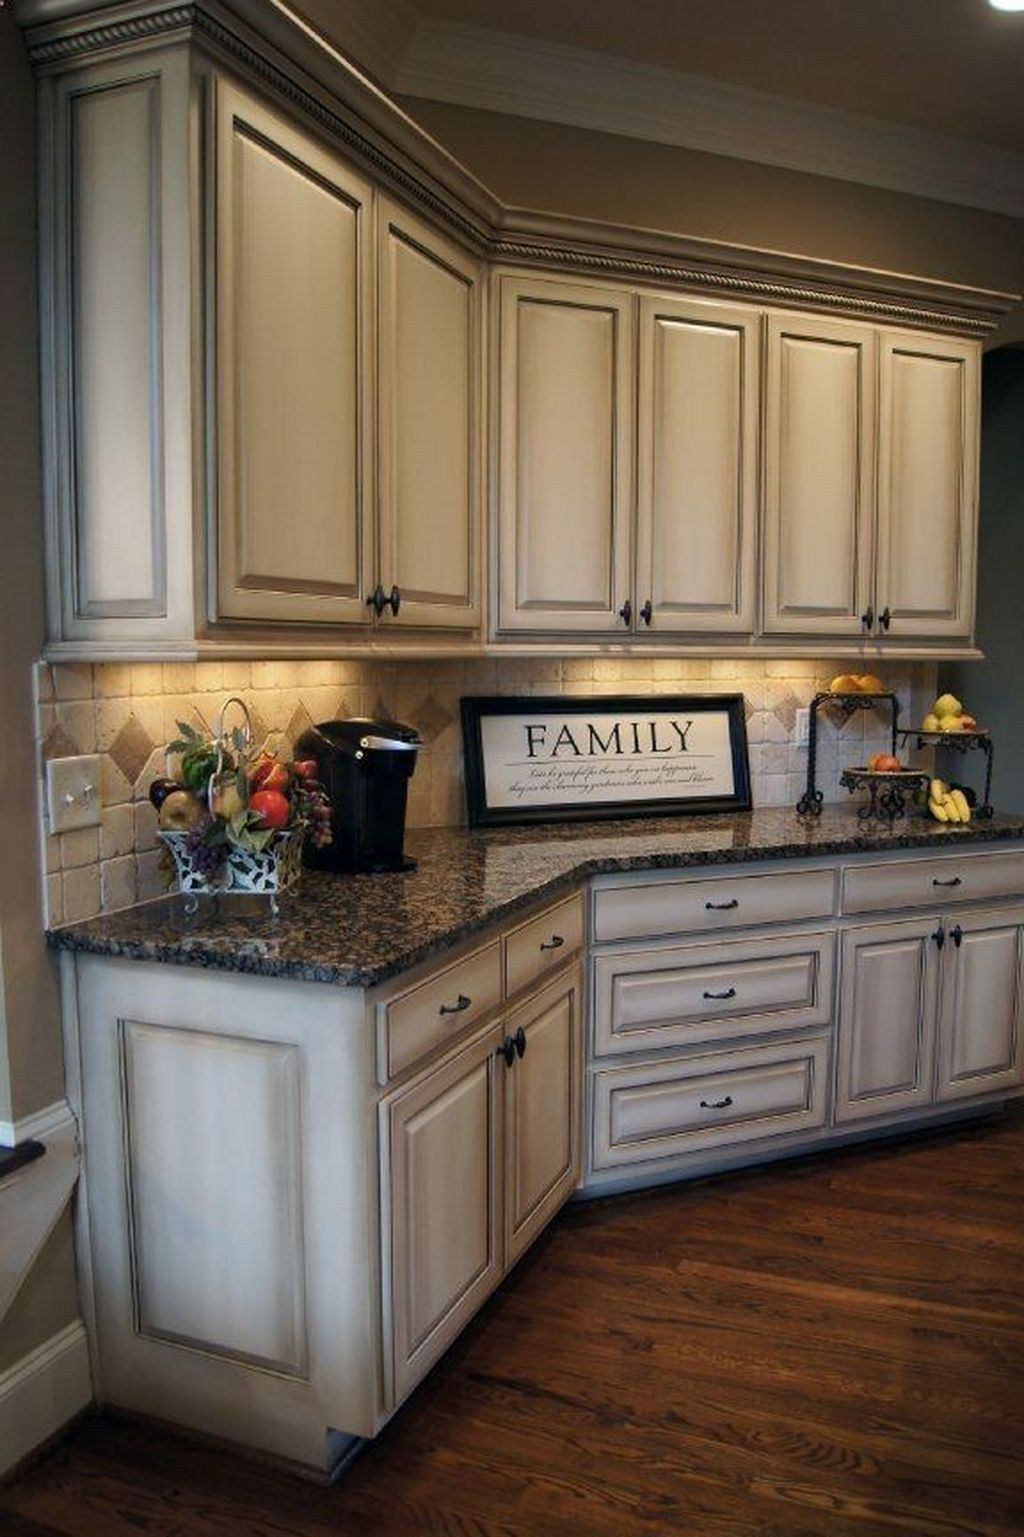 Amazing Painted Kitchen Cabinets 12 Antique White Kitchen Antique White Kitchen Cabinets Rustic Kitchen Cabinets